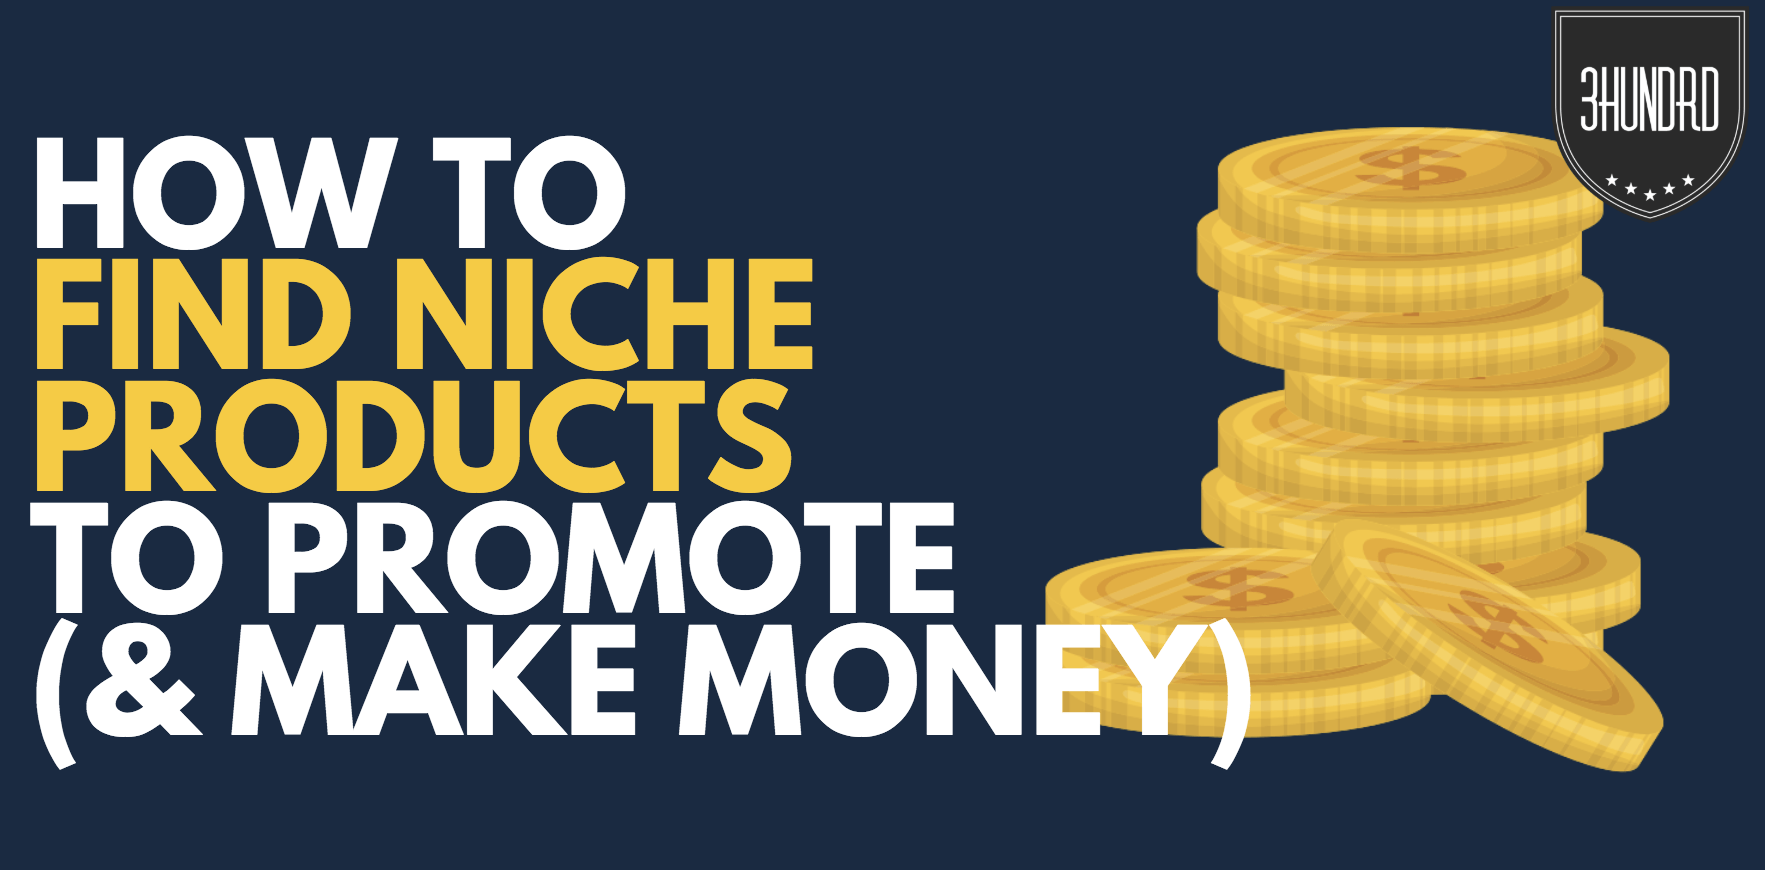 how to find niche products to promote